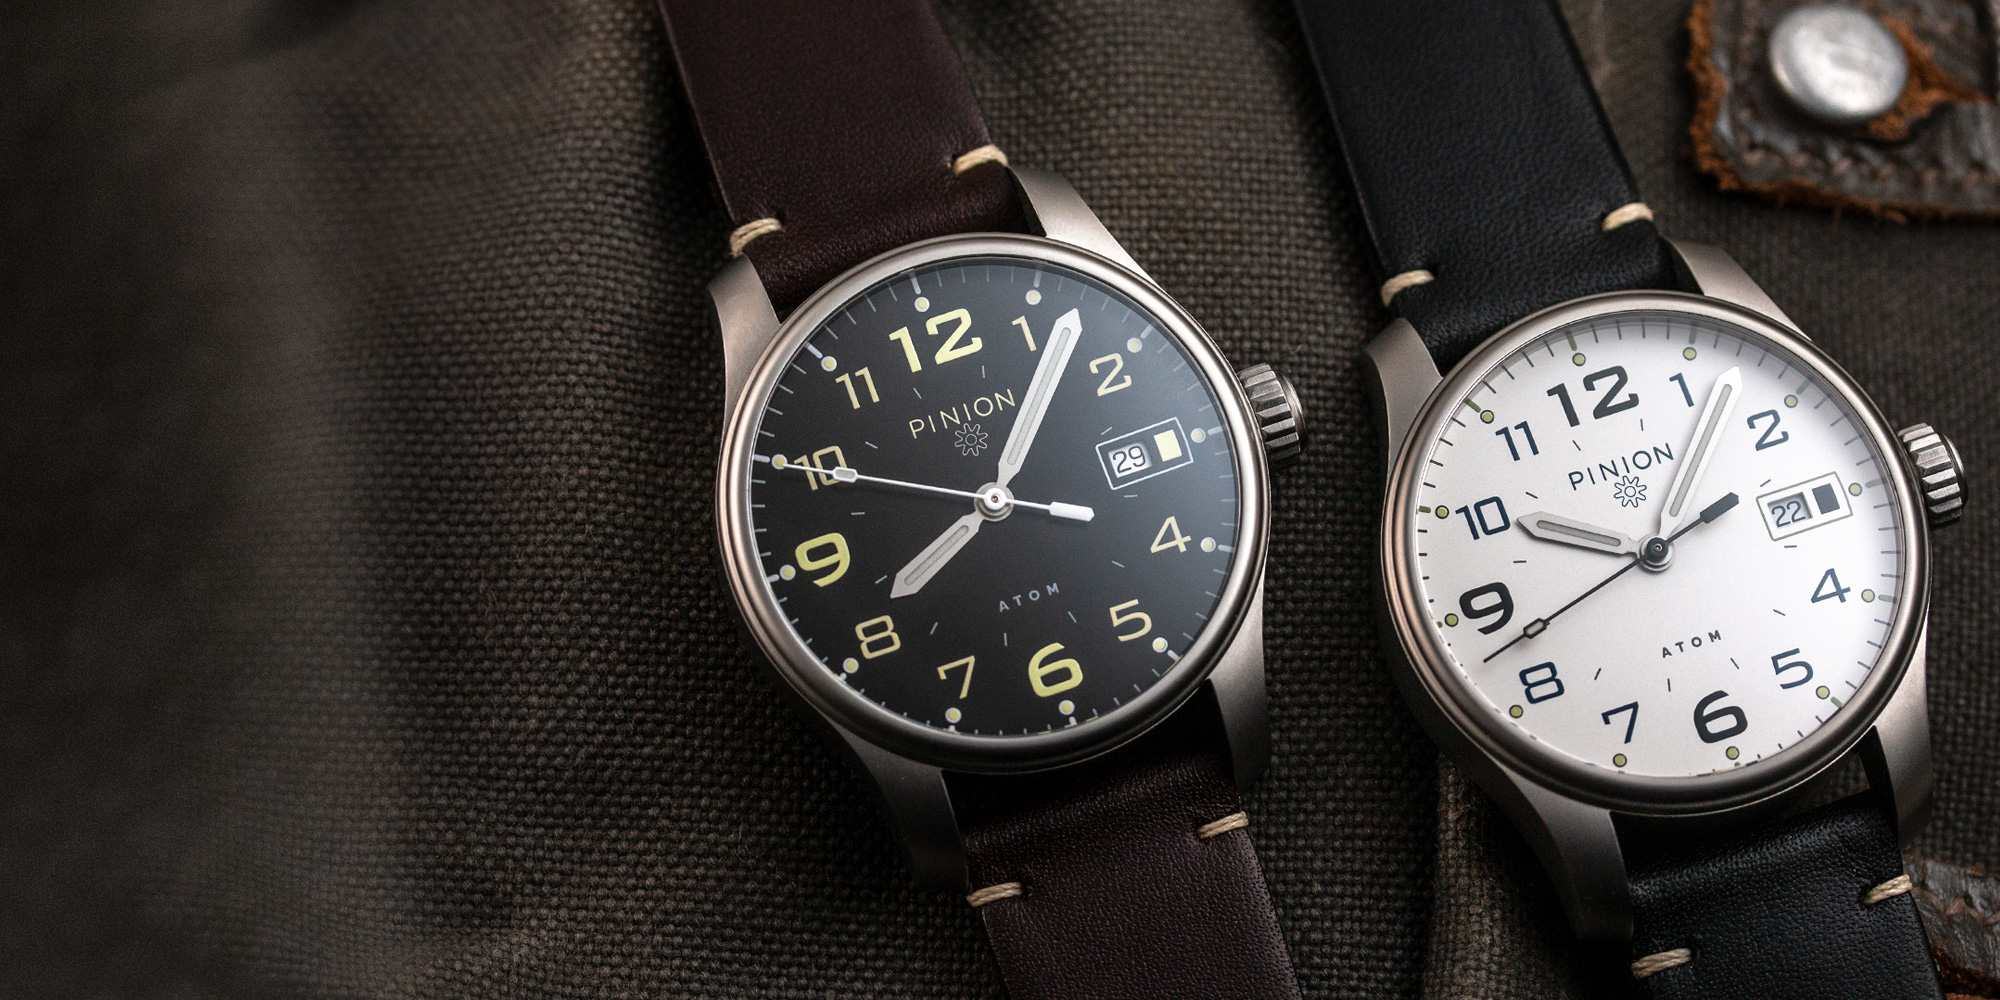 pinion-atom-39mm-watch-collection